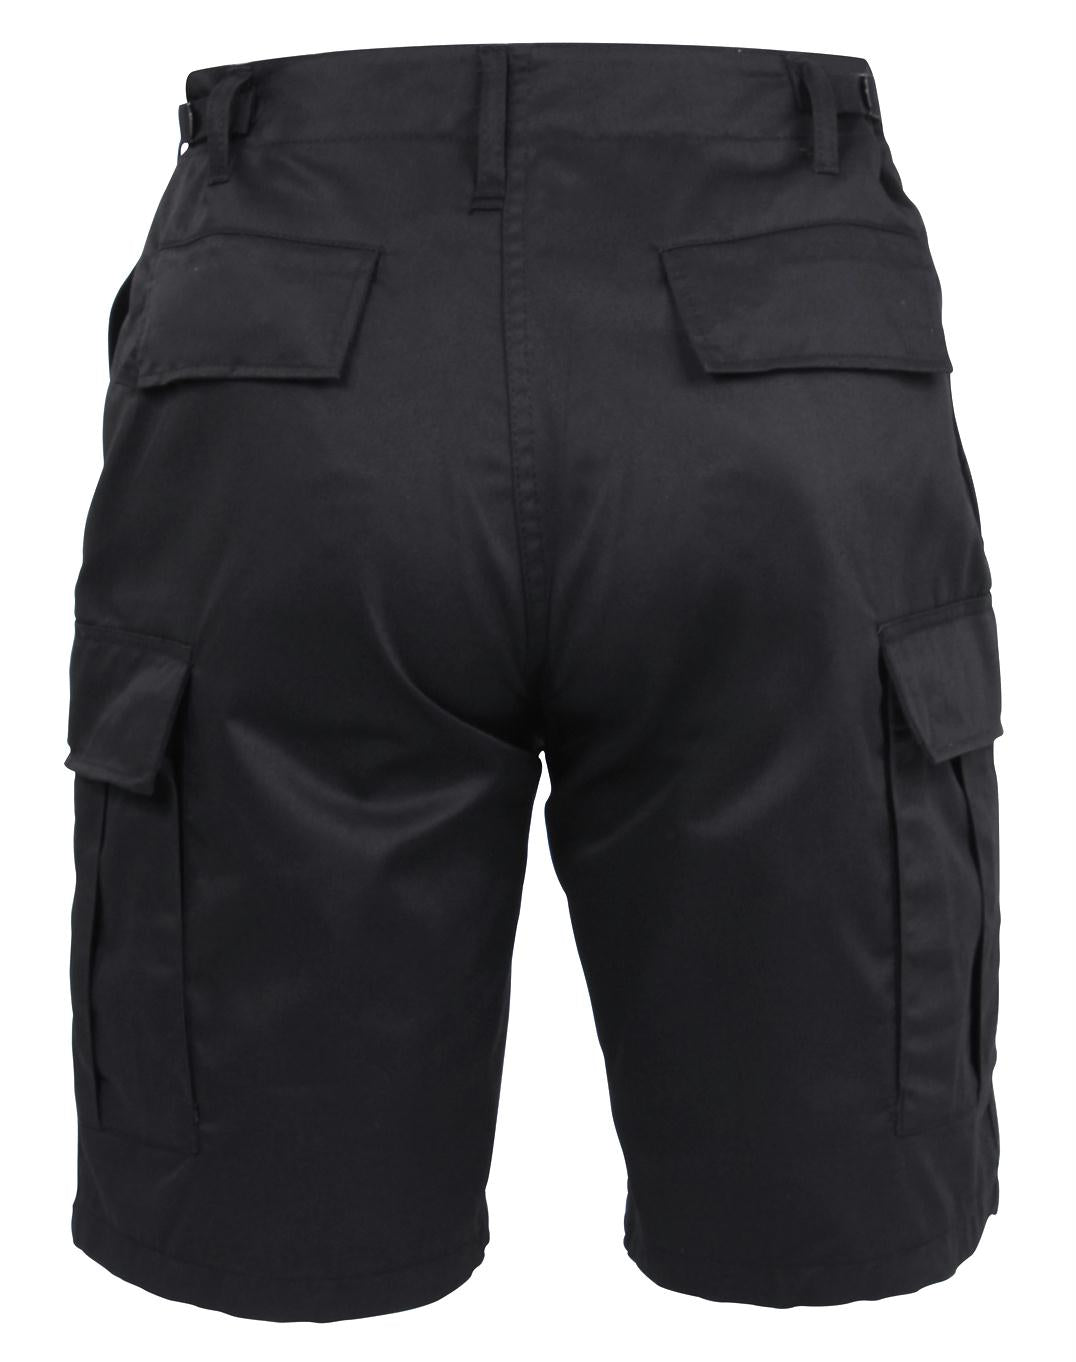 Rothco BDU Shorts - Black / 2XL